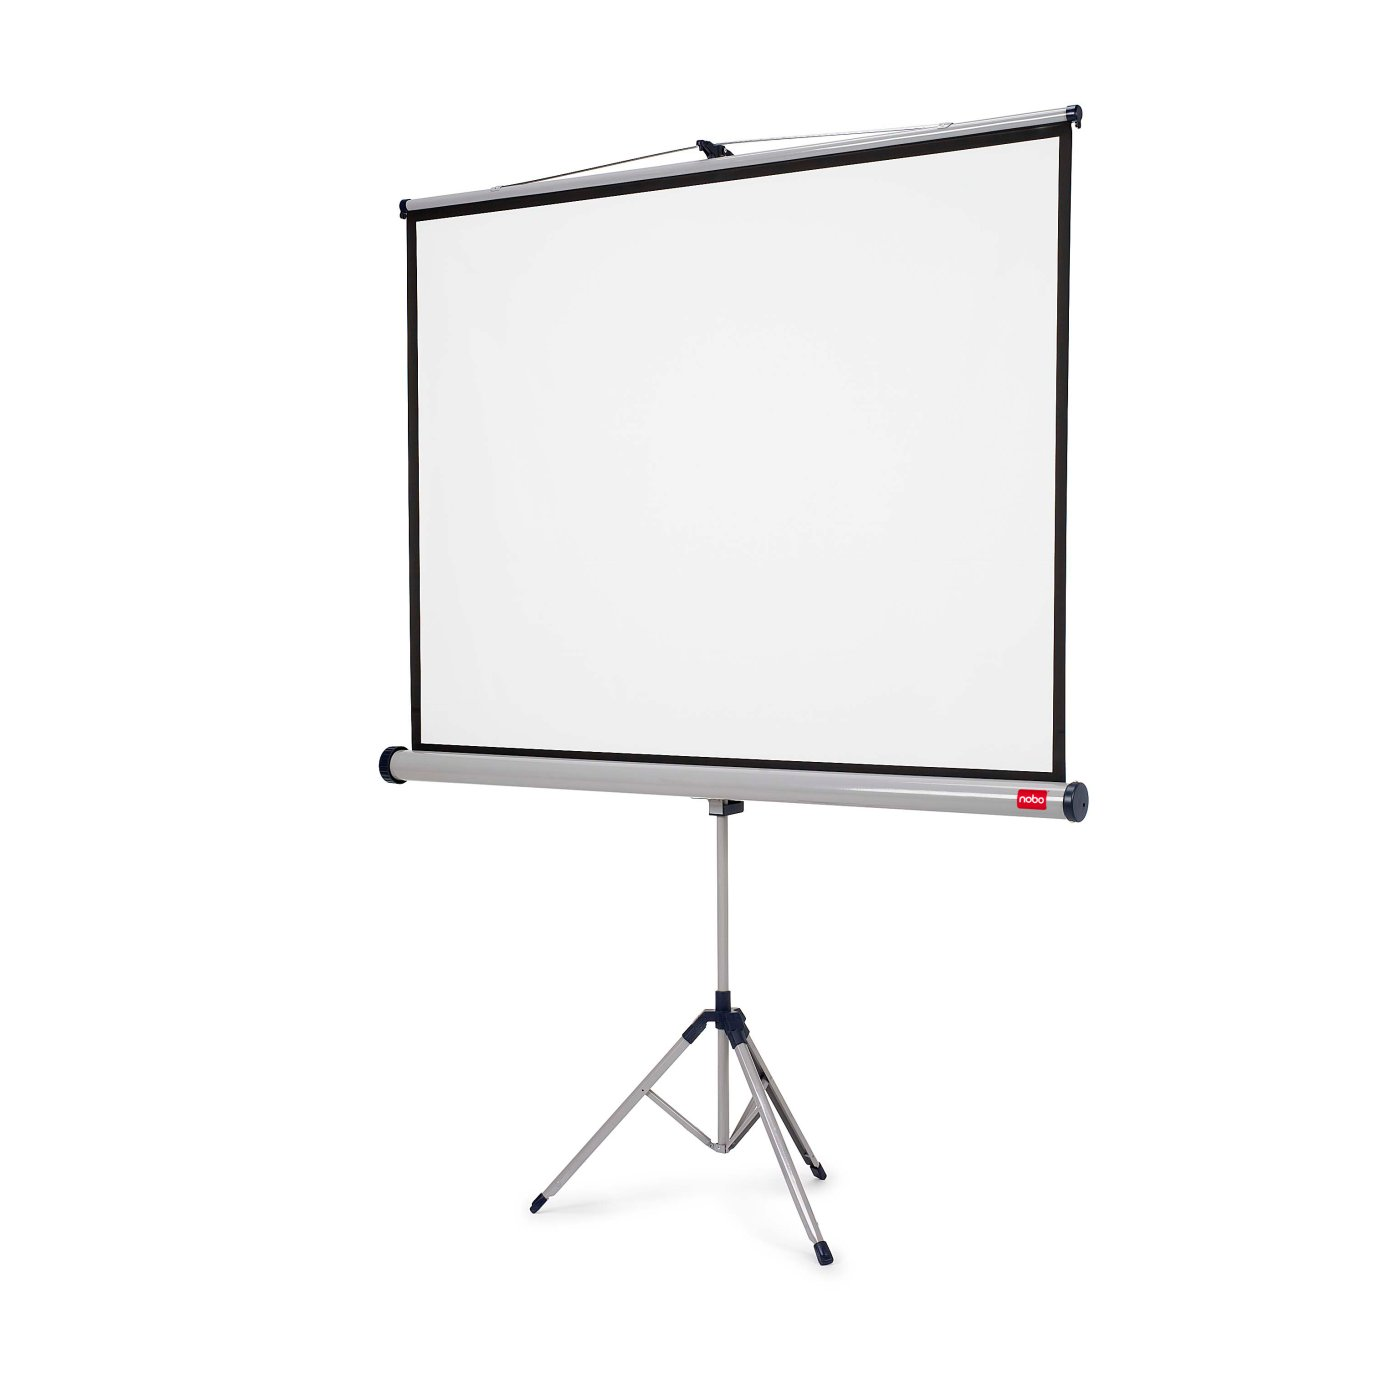 tripod projection screens - Projection Screens